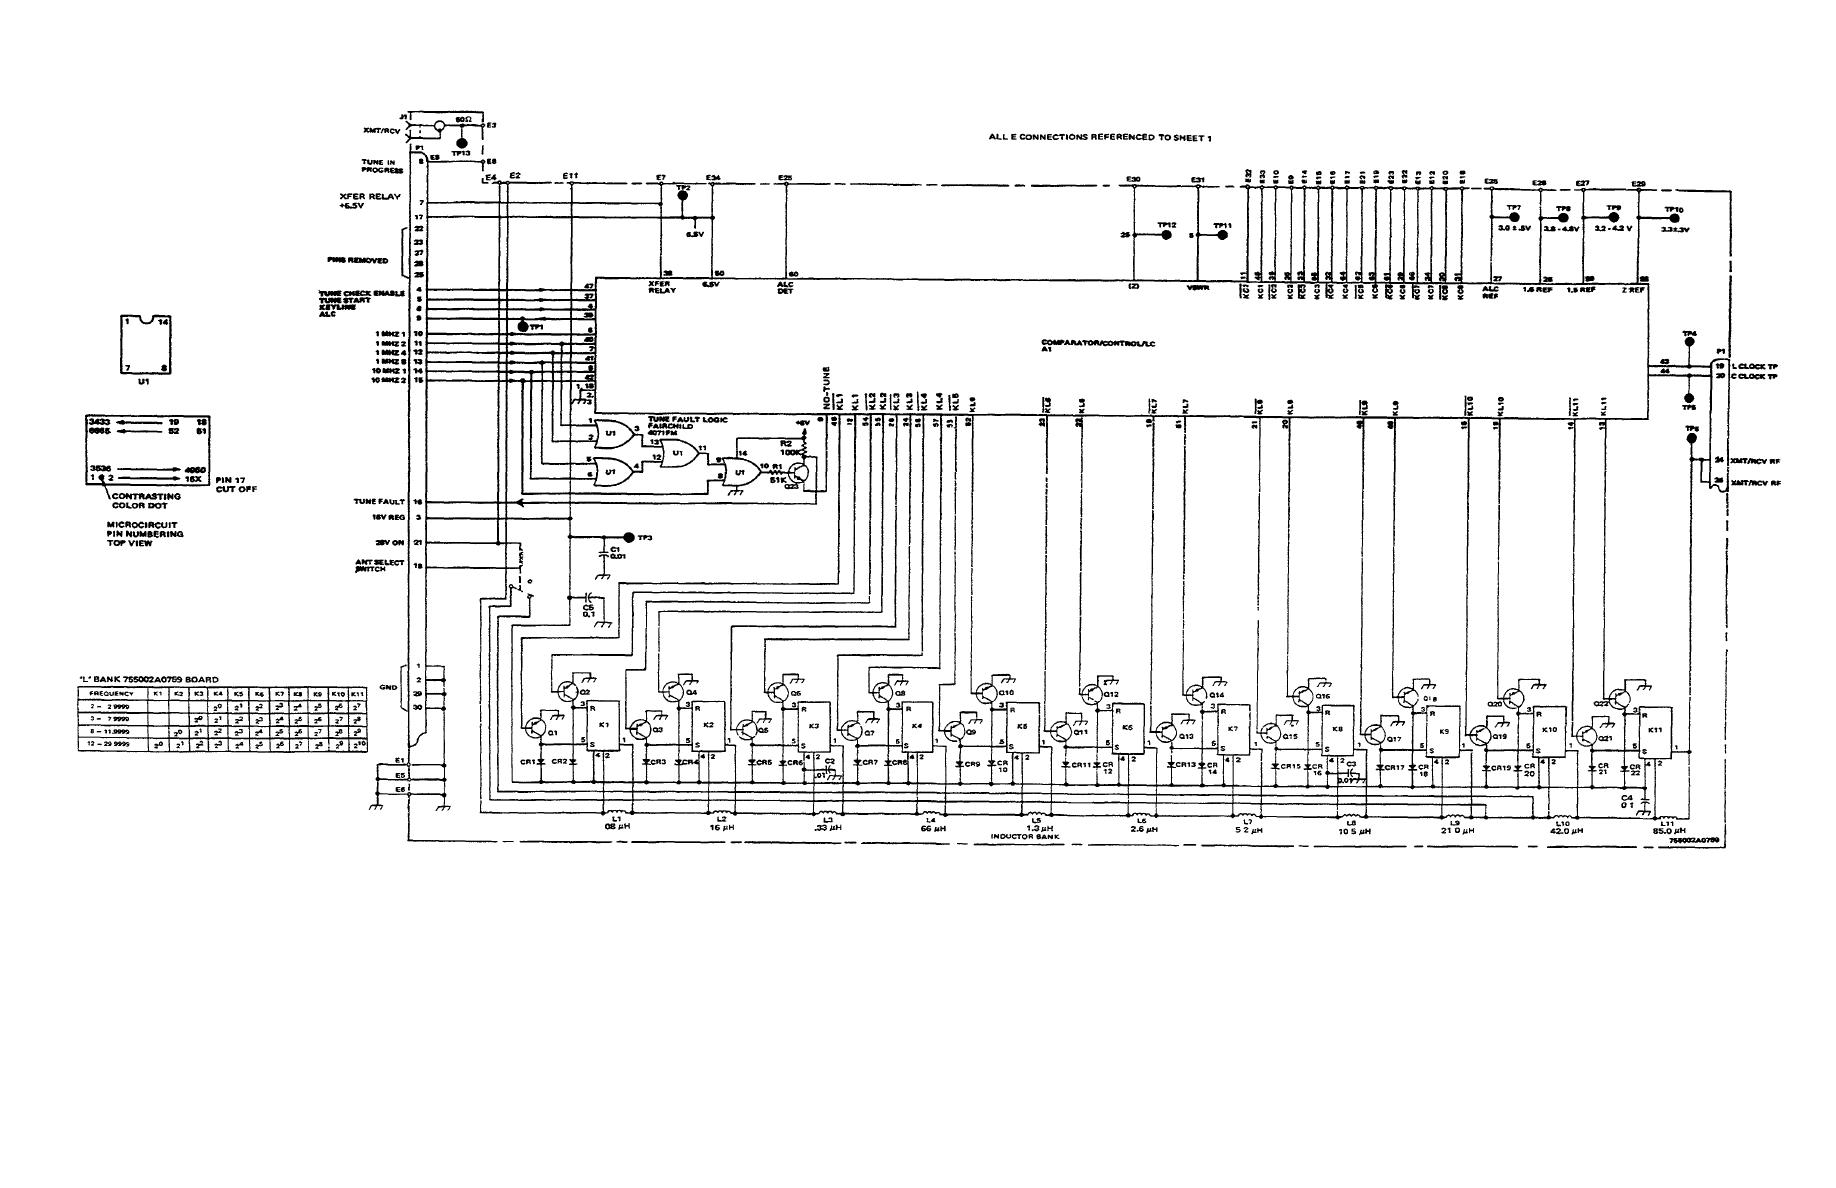 tv tuner card circuit diagram wiring for off road lights schematics, tuner, get free image about